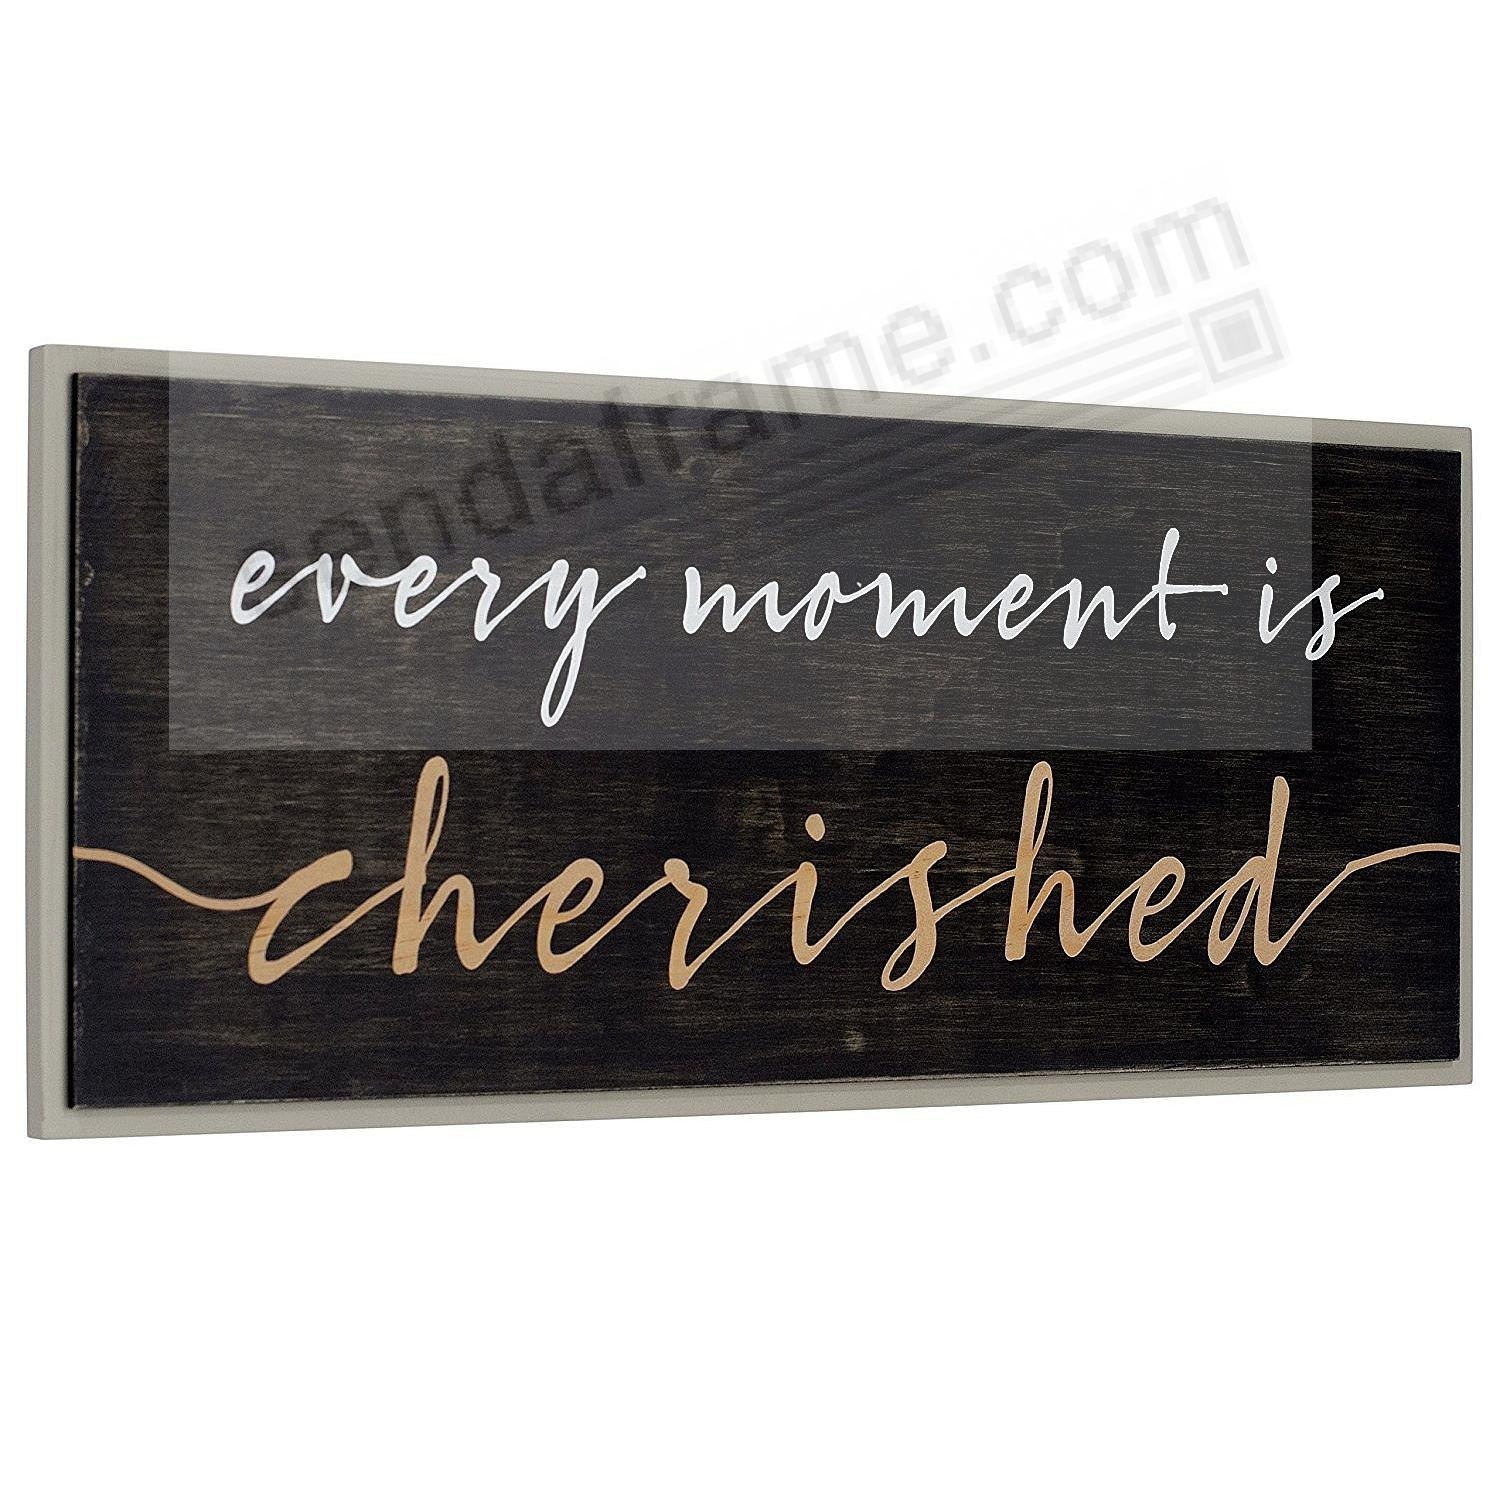 EVERY MOMENT IS CHERISHED 16x7 Expressions Sign